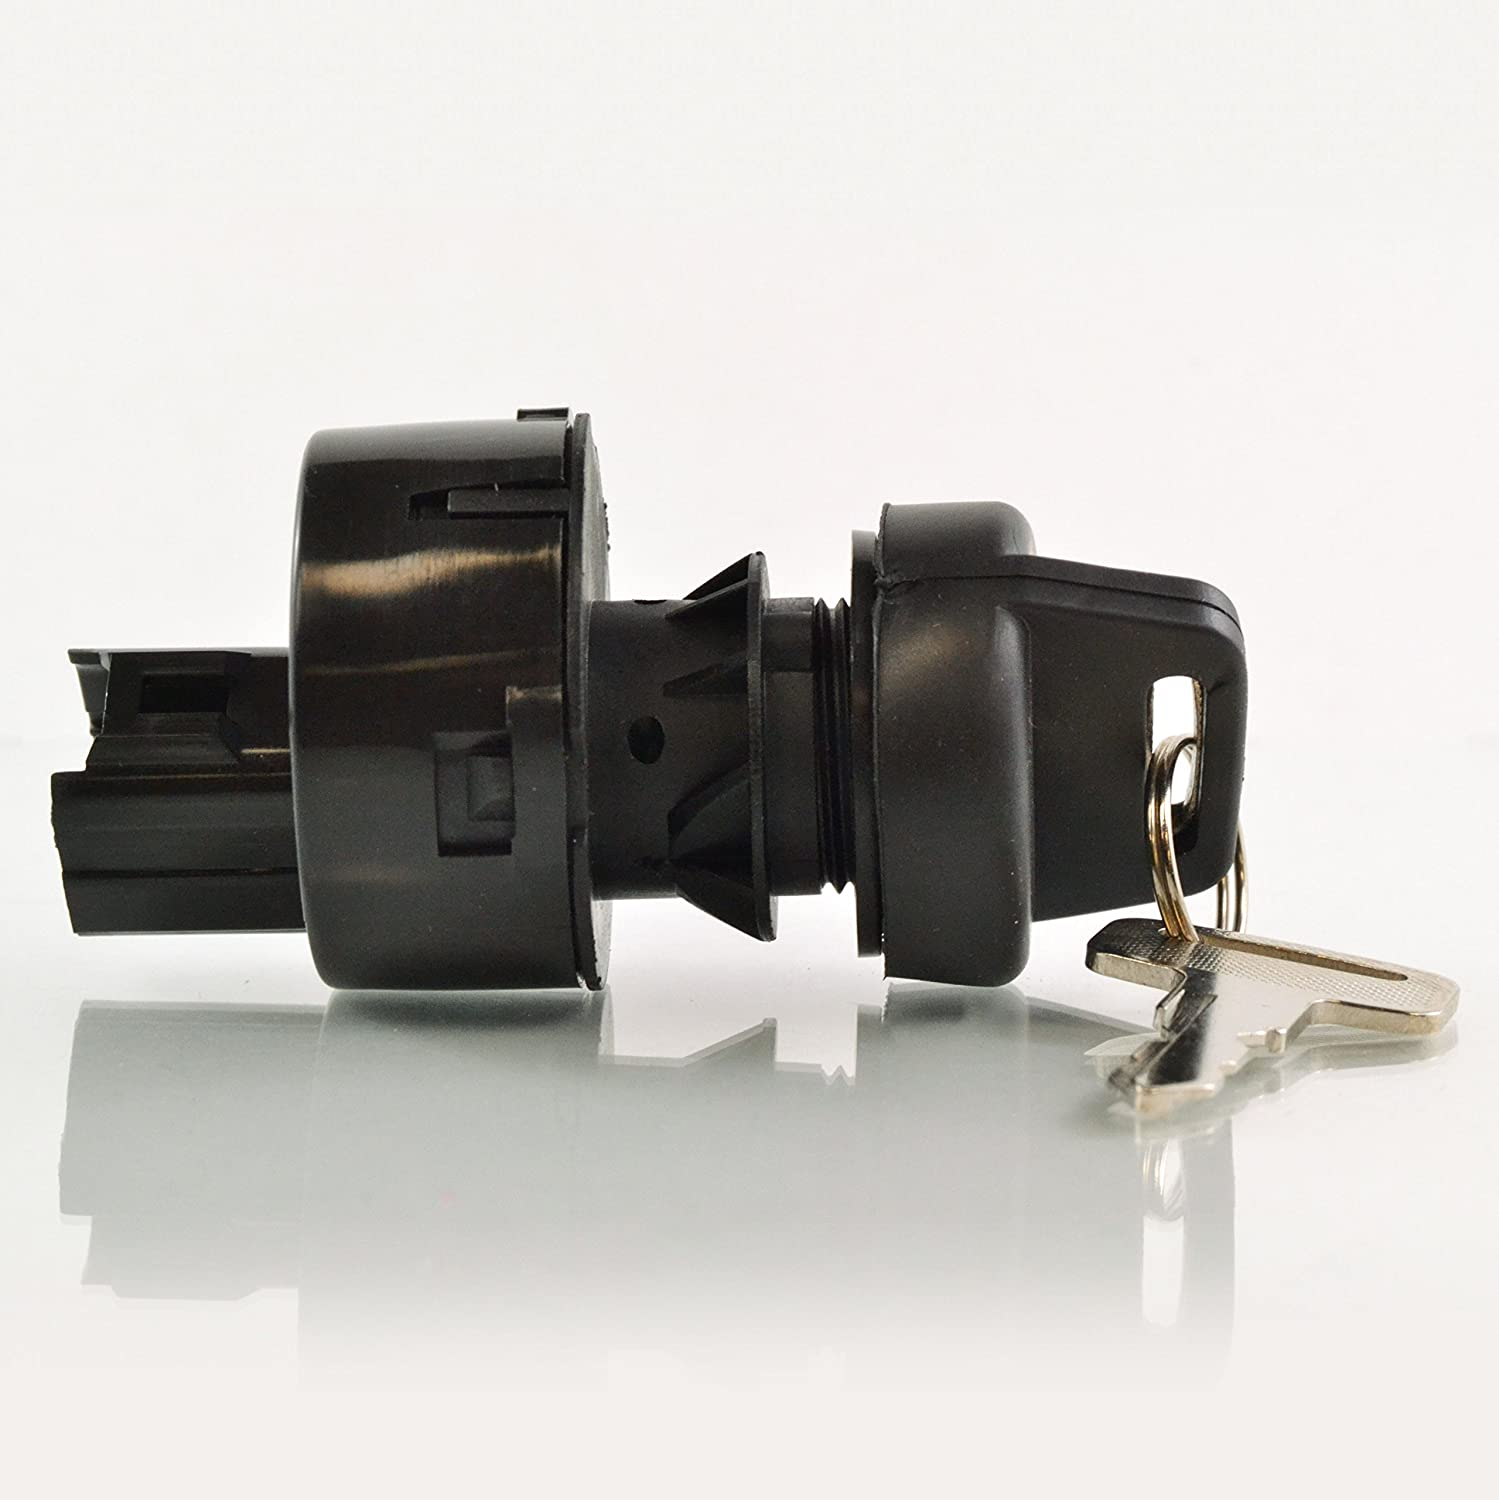 OEM Repl.# 0430-040//0430-089//0430-106//0609-936 Ignition Key Switch for Arctic Cat Prowler 500 550 650 700 1000 Wildcat 700 1000 2006-2017 3-Pos